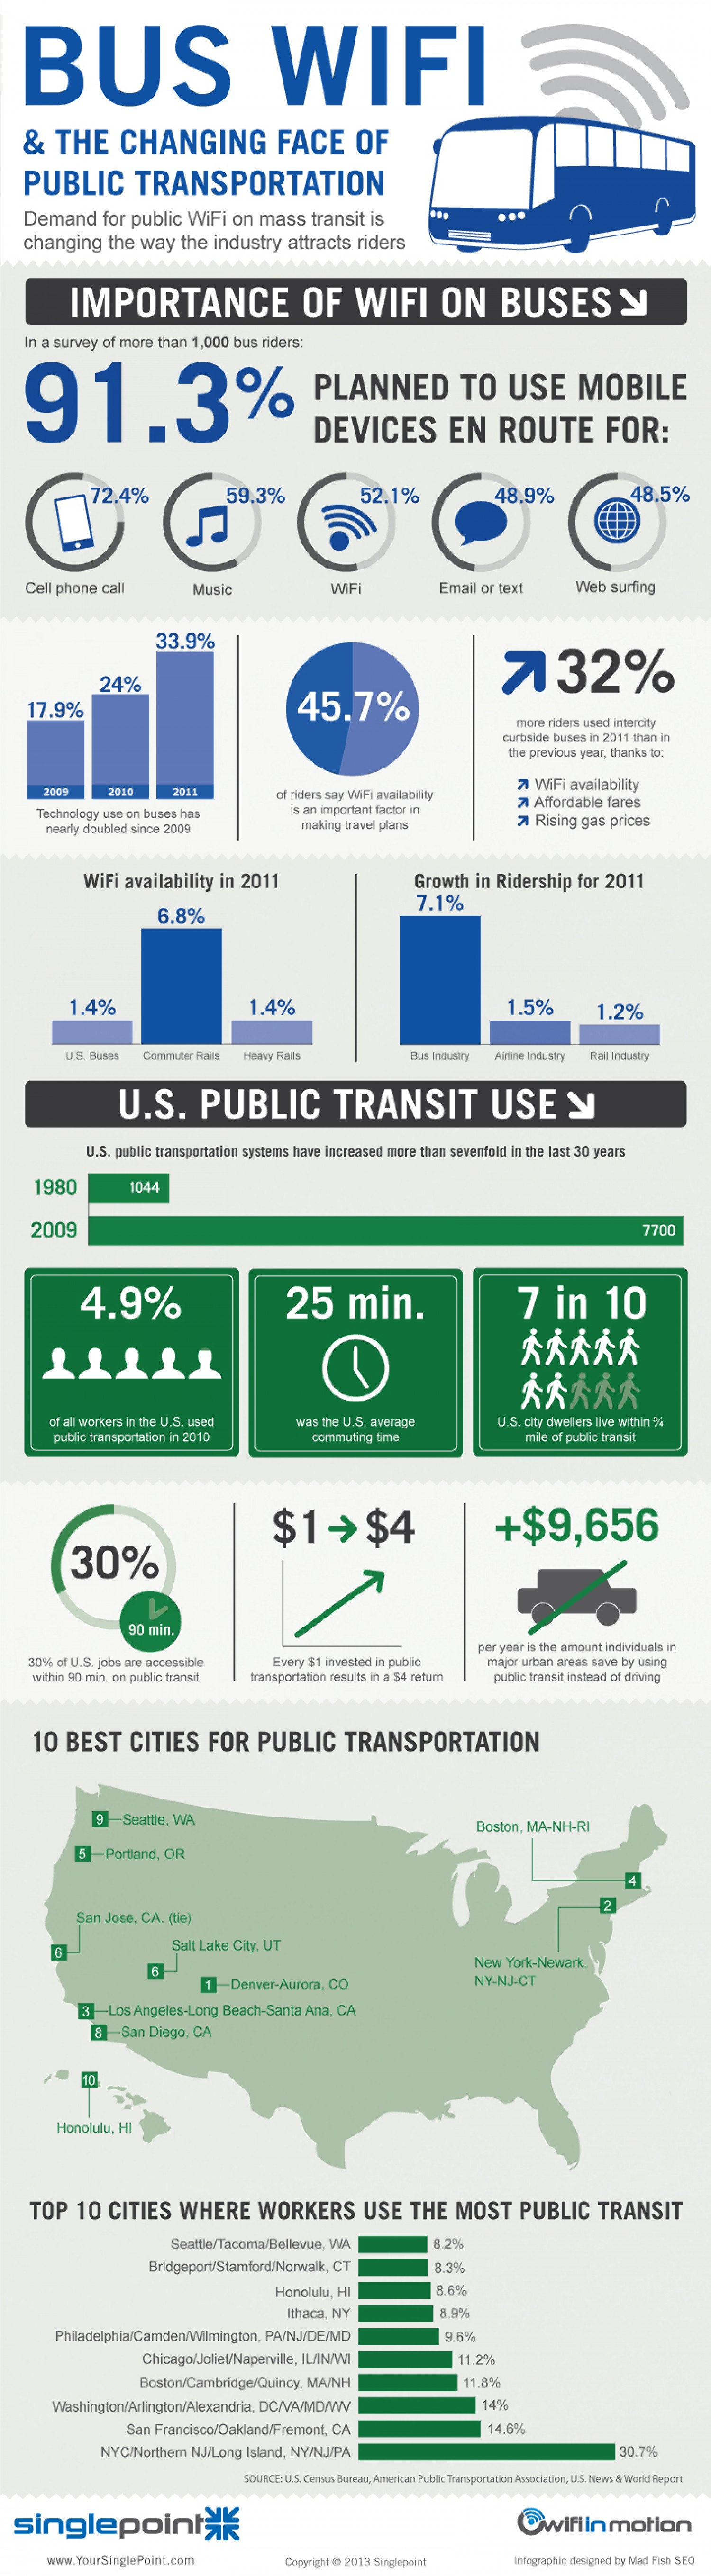 5. Bus WiFi and the Changing Face of Public Transportation